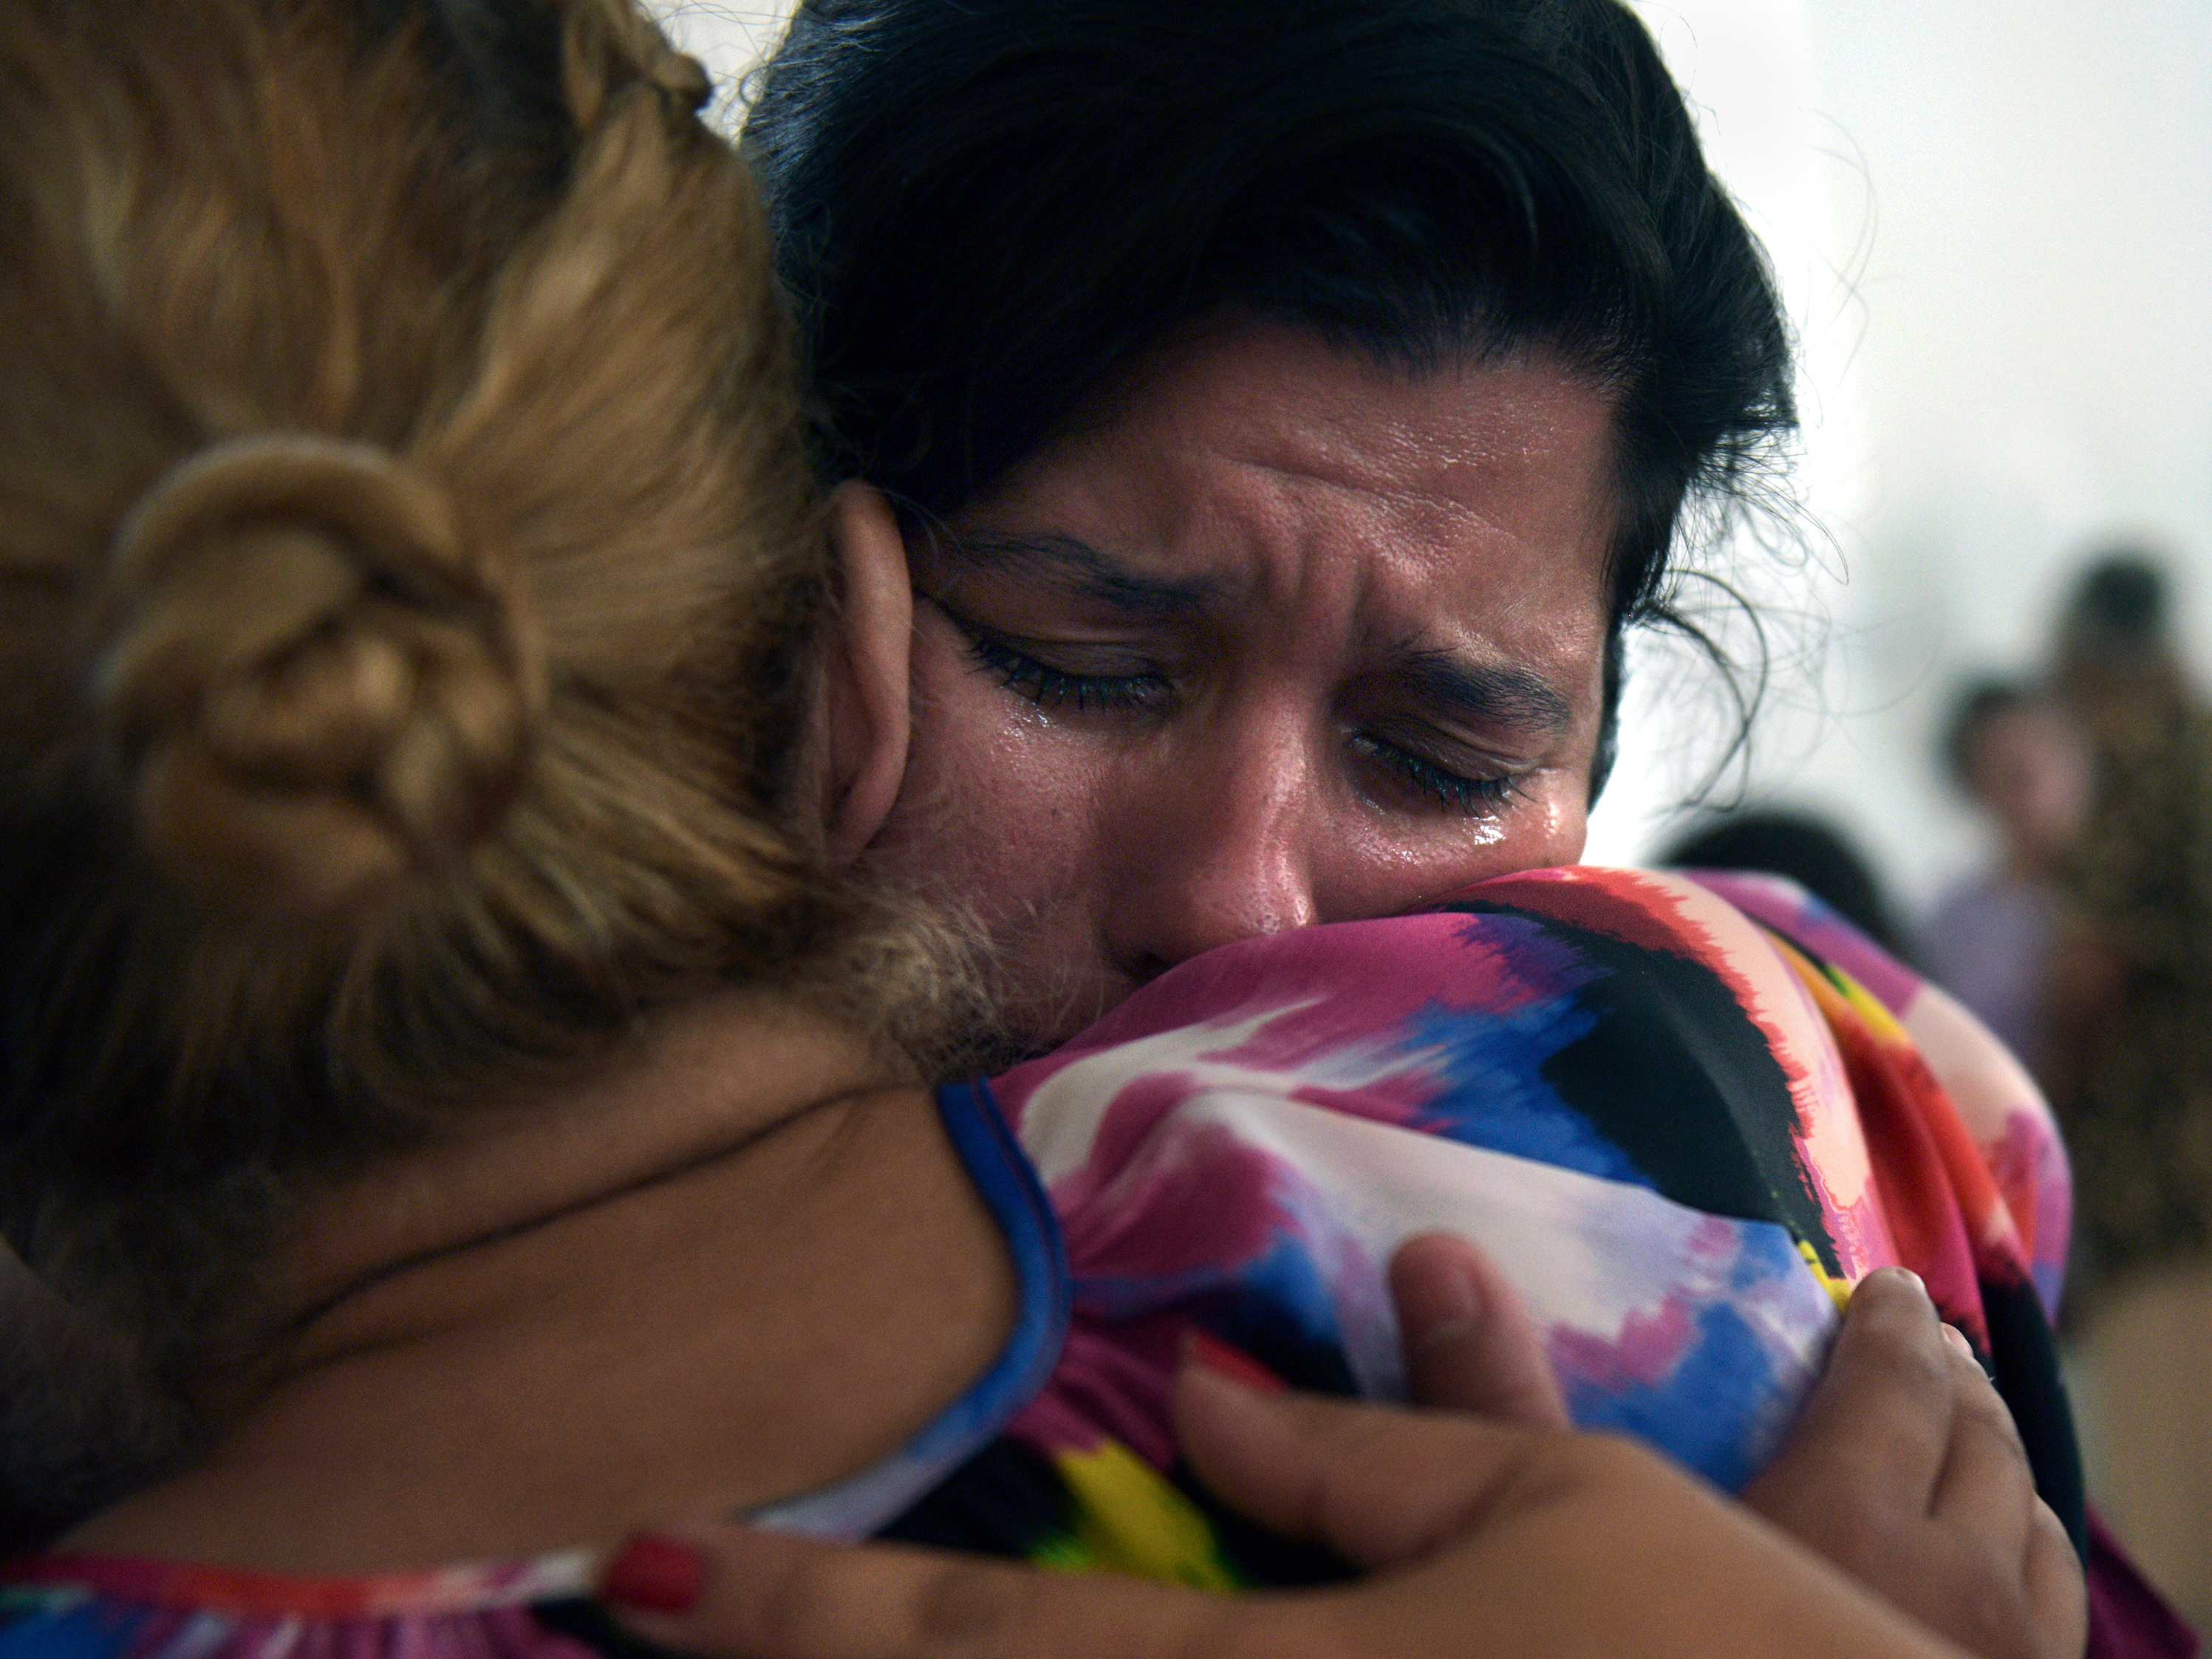 'Here, We Are United': A Puerto Rico Church Offers Comfort After Hurricane Maria